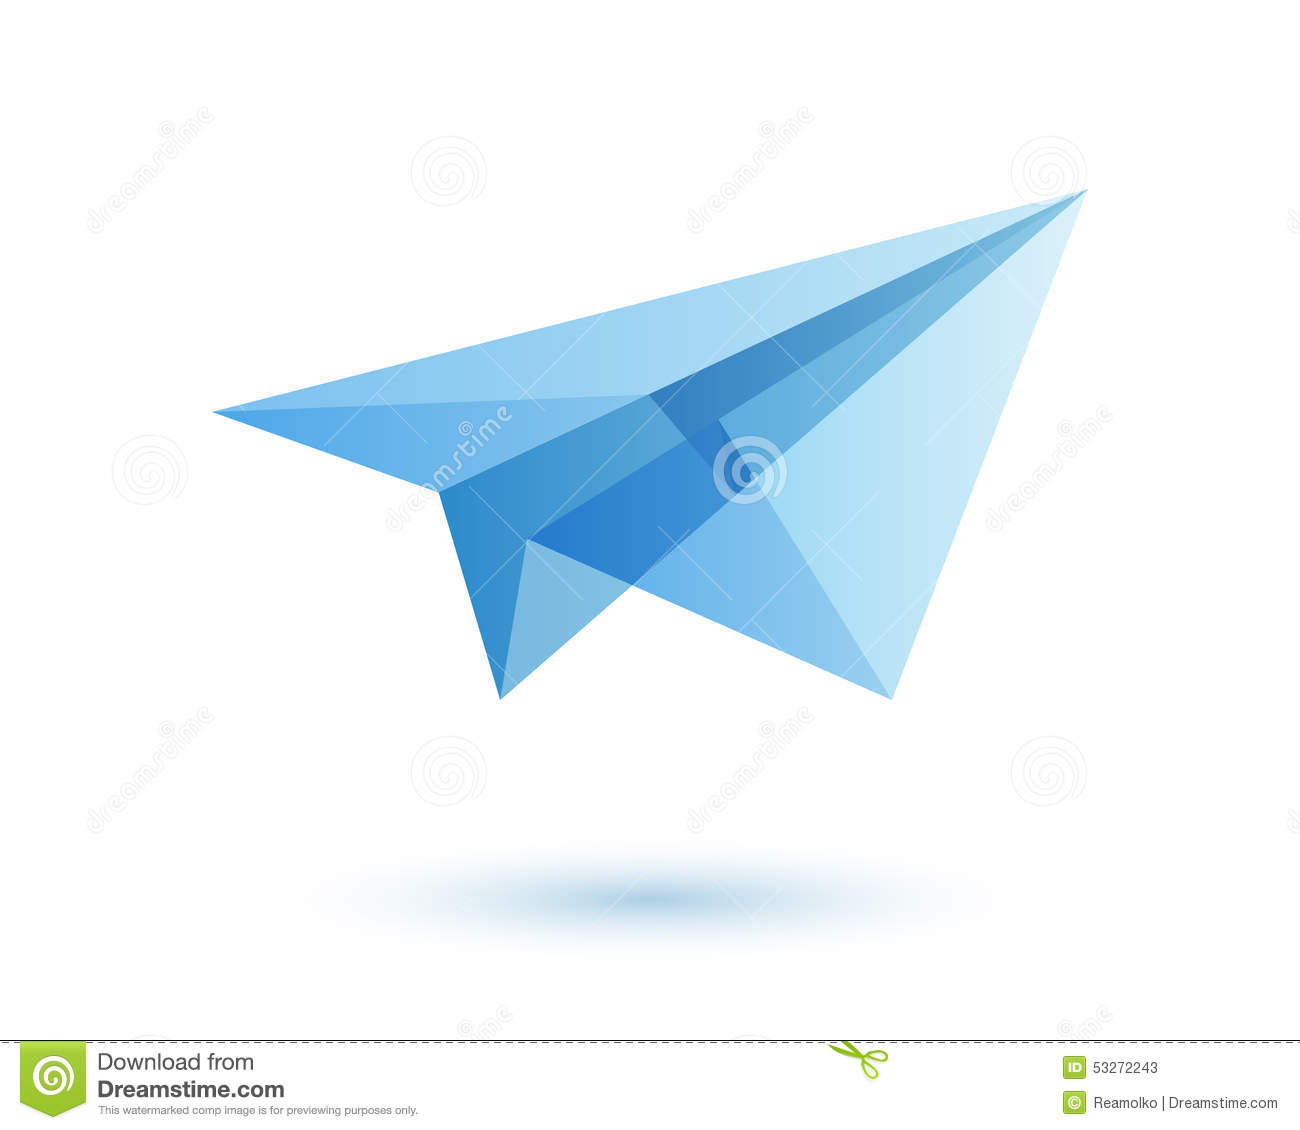 Paper Plane Logo Design Idea Stock Vector - Image: 53272243